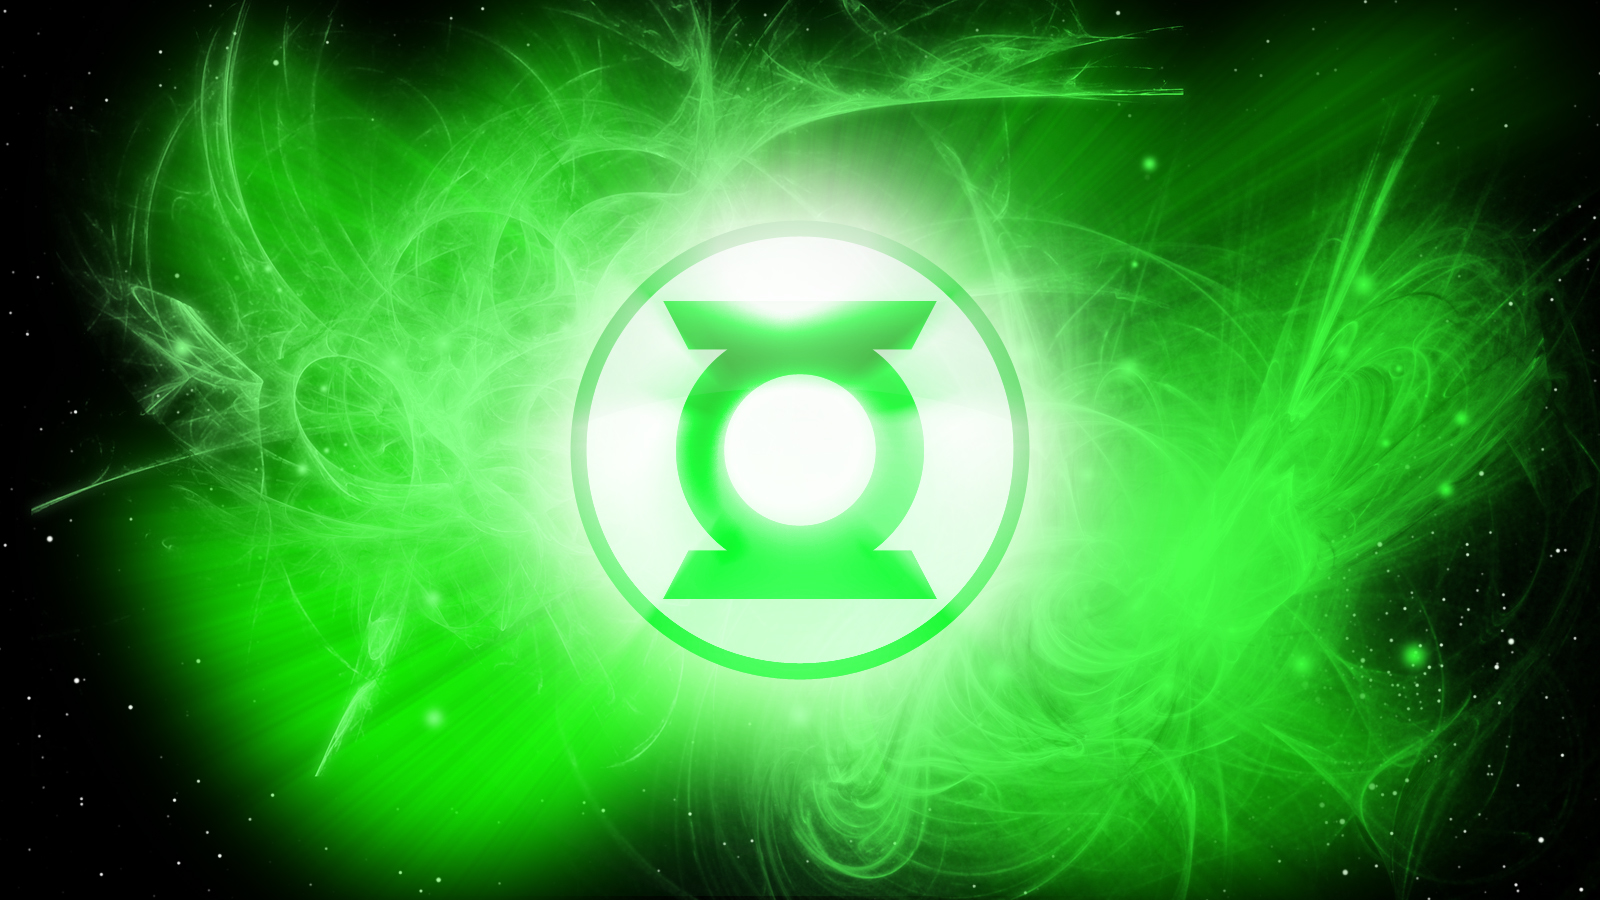 Green lantern corps wallpaper sf wallpaper green lantern corps wallpaper biocorpaavc Gallery